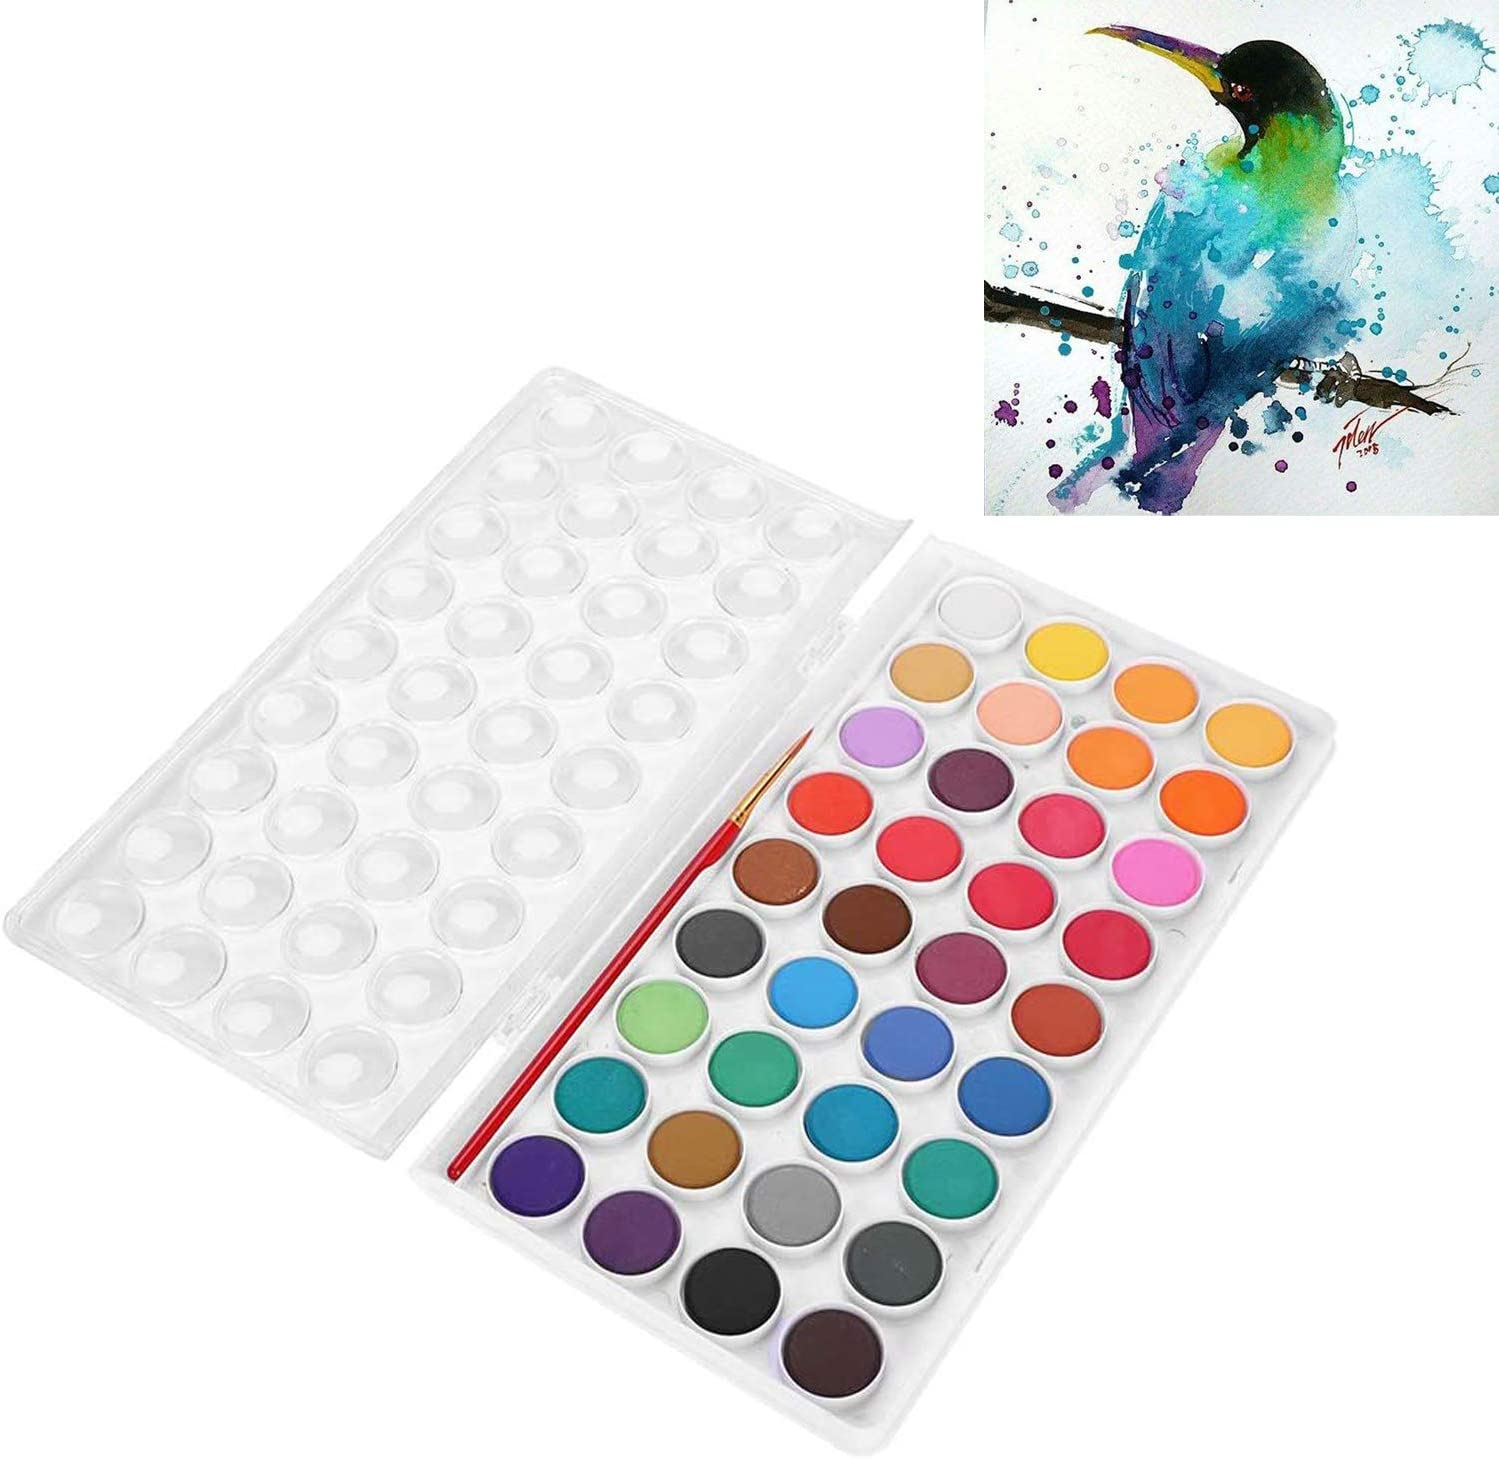 Watercolor Paint Set, 36 Assorted Vivid Colors Solid Cakes Travel Palette Art Supplies with Water Brush for Kids Student Artist